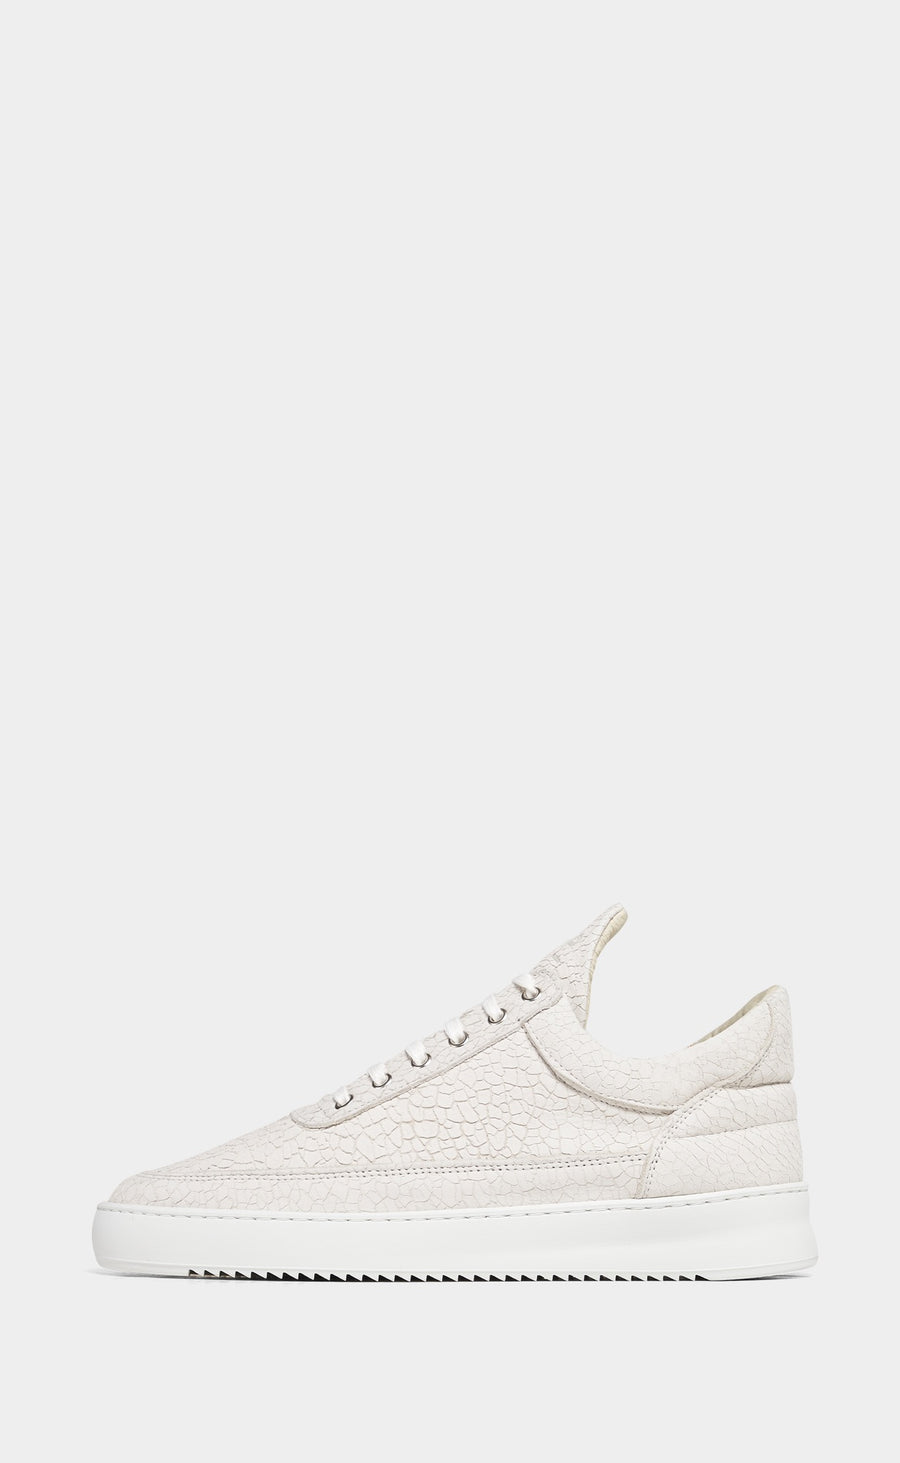 Low Top Ripple Tectonic Off White